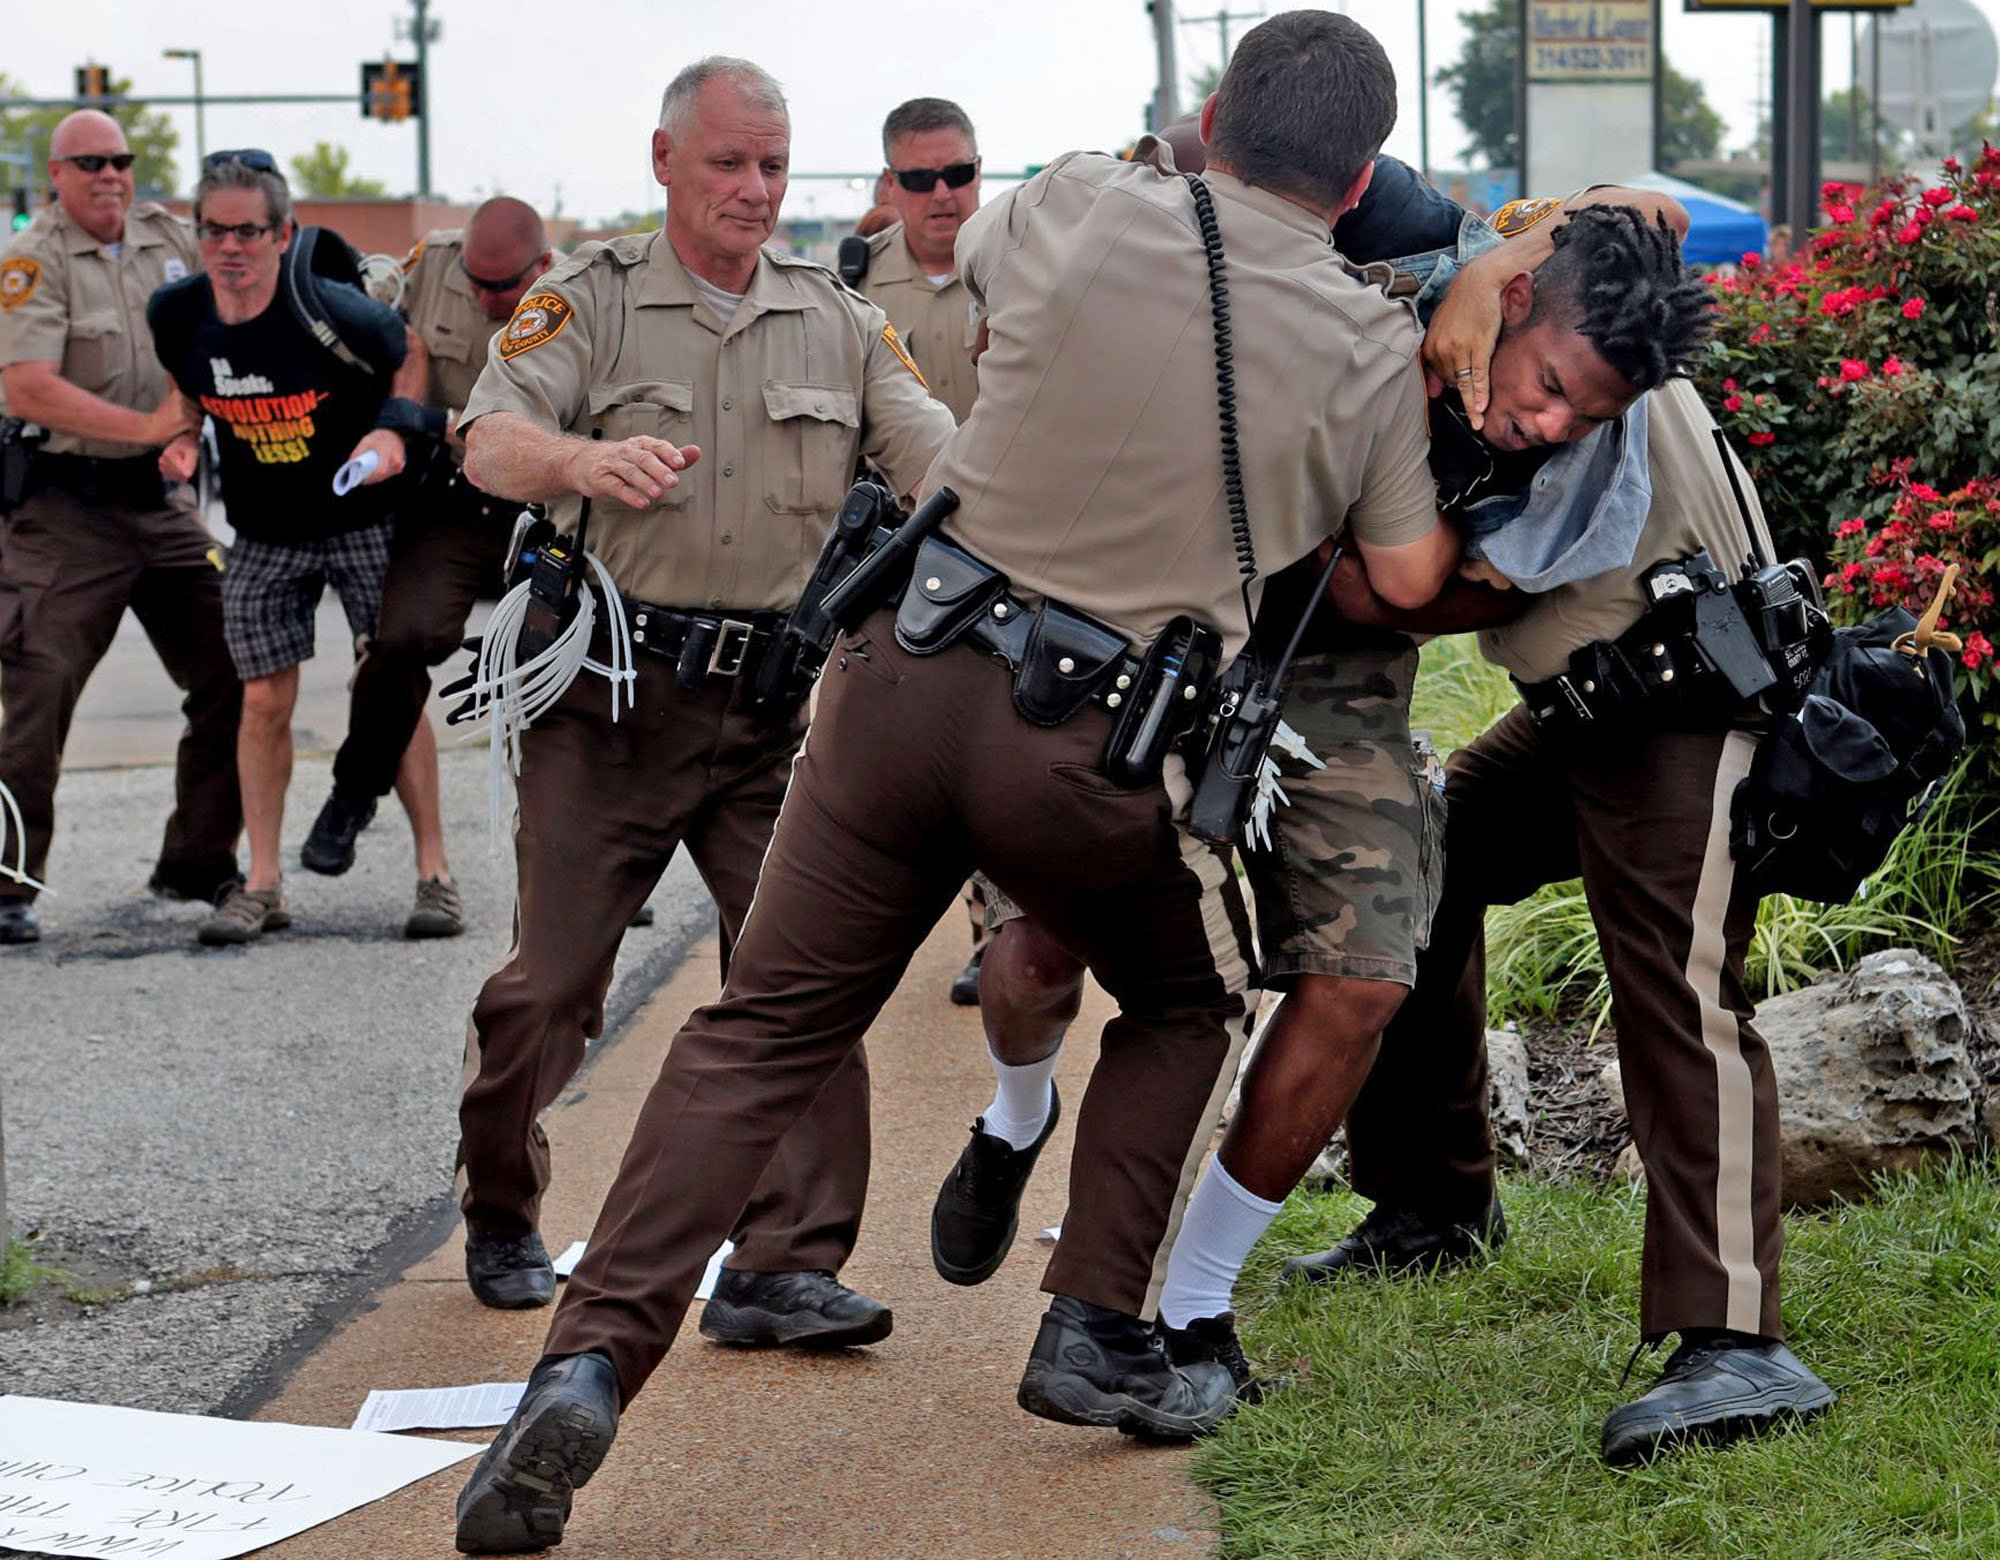 Police tackle a man who was walking down the street in front of McDonald's in Ferguson, Mo. on Aug. 18, 2014.